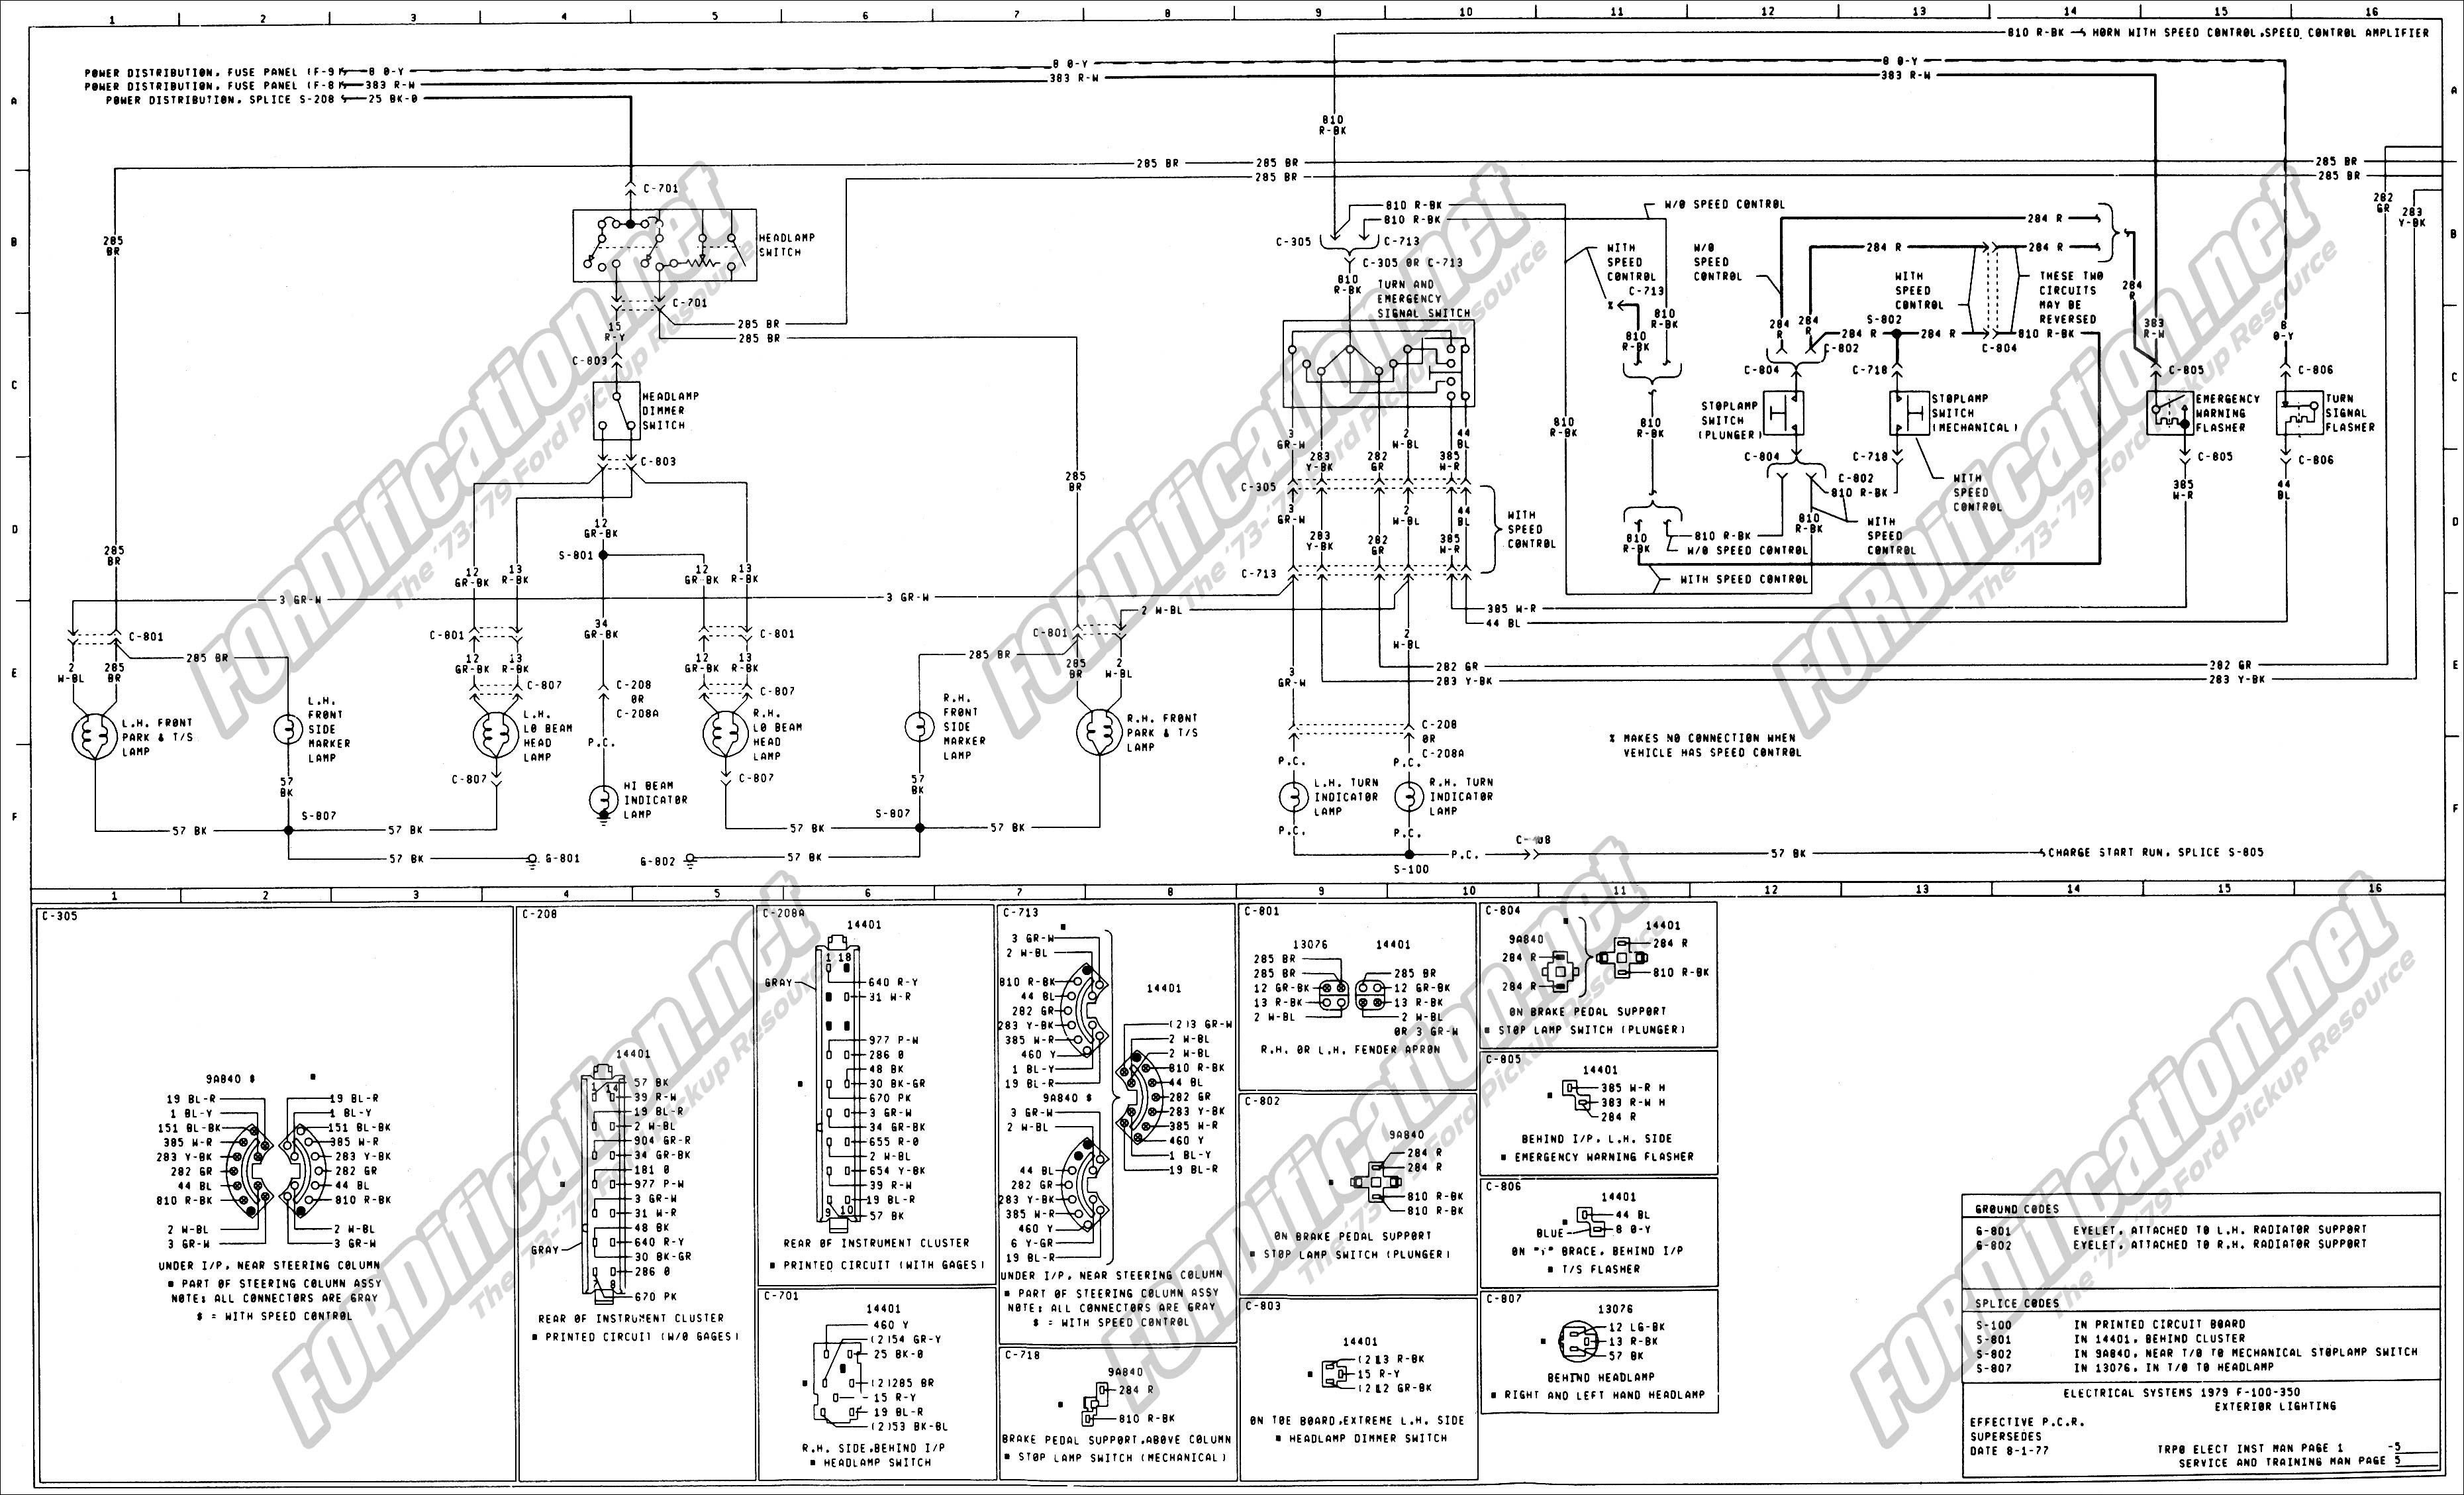 New 2003 Ford F150 Wiring Diagram In 2020 Ford Fusion Diagram Electrical Wiring Diagram